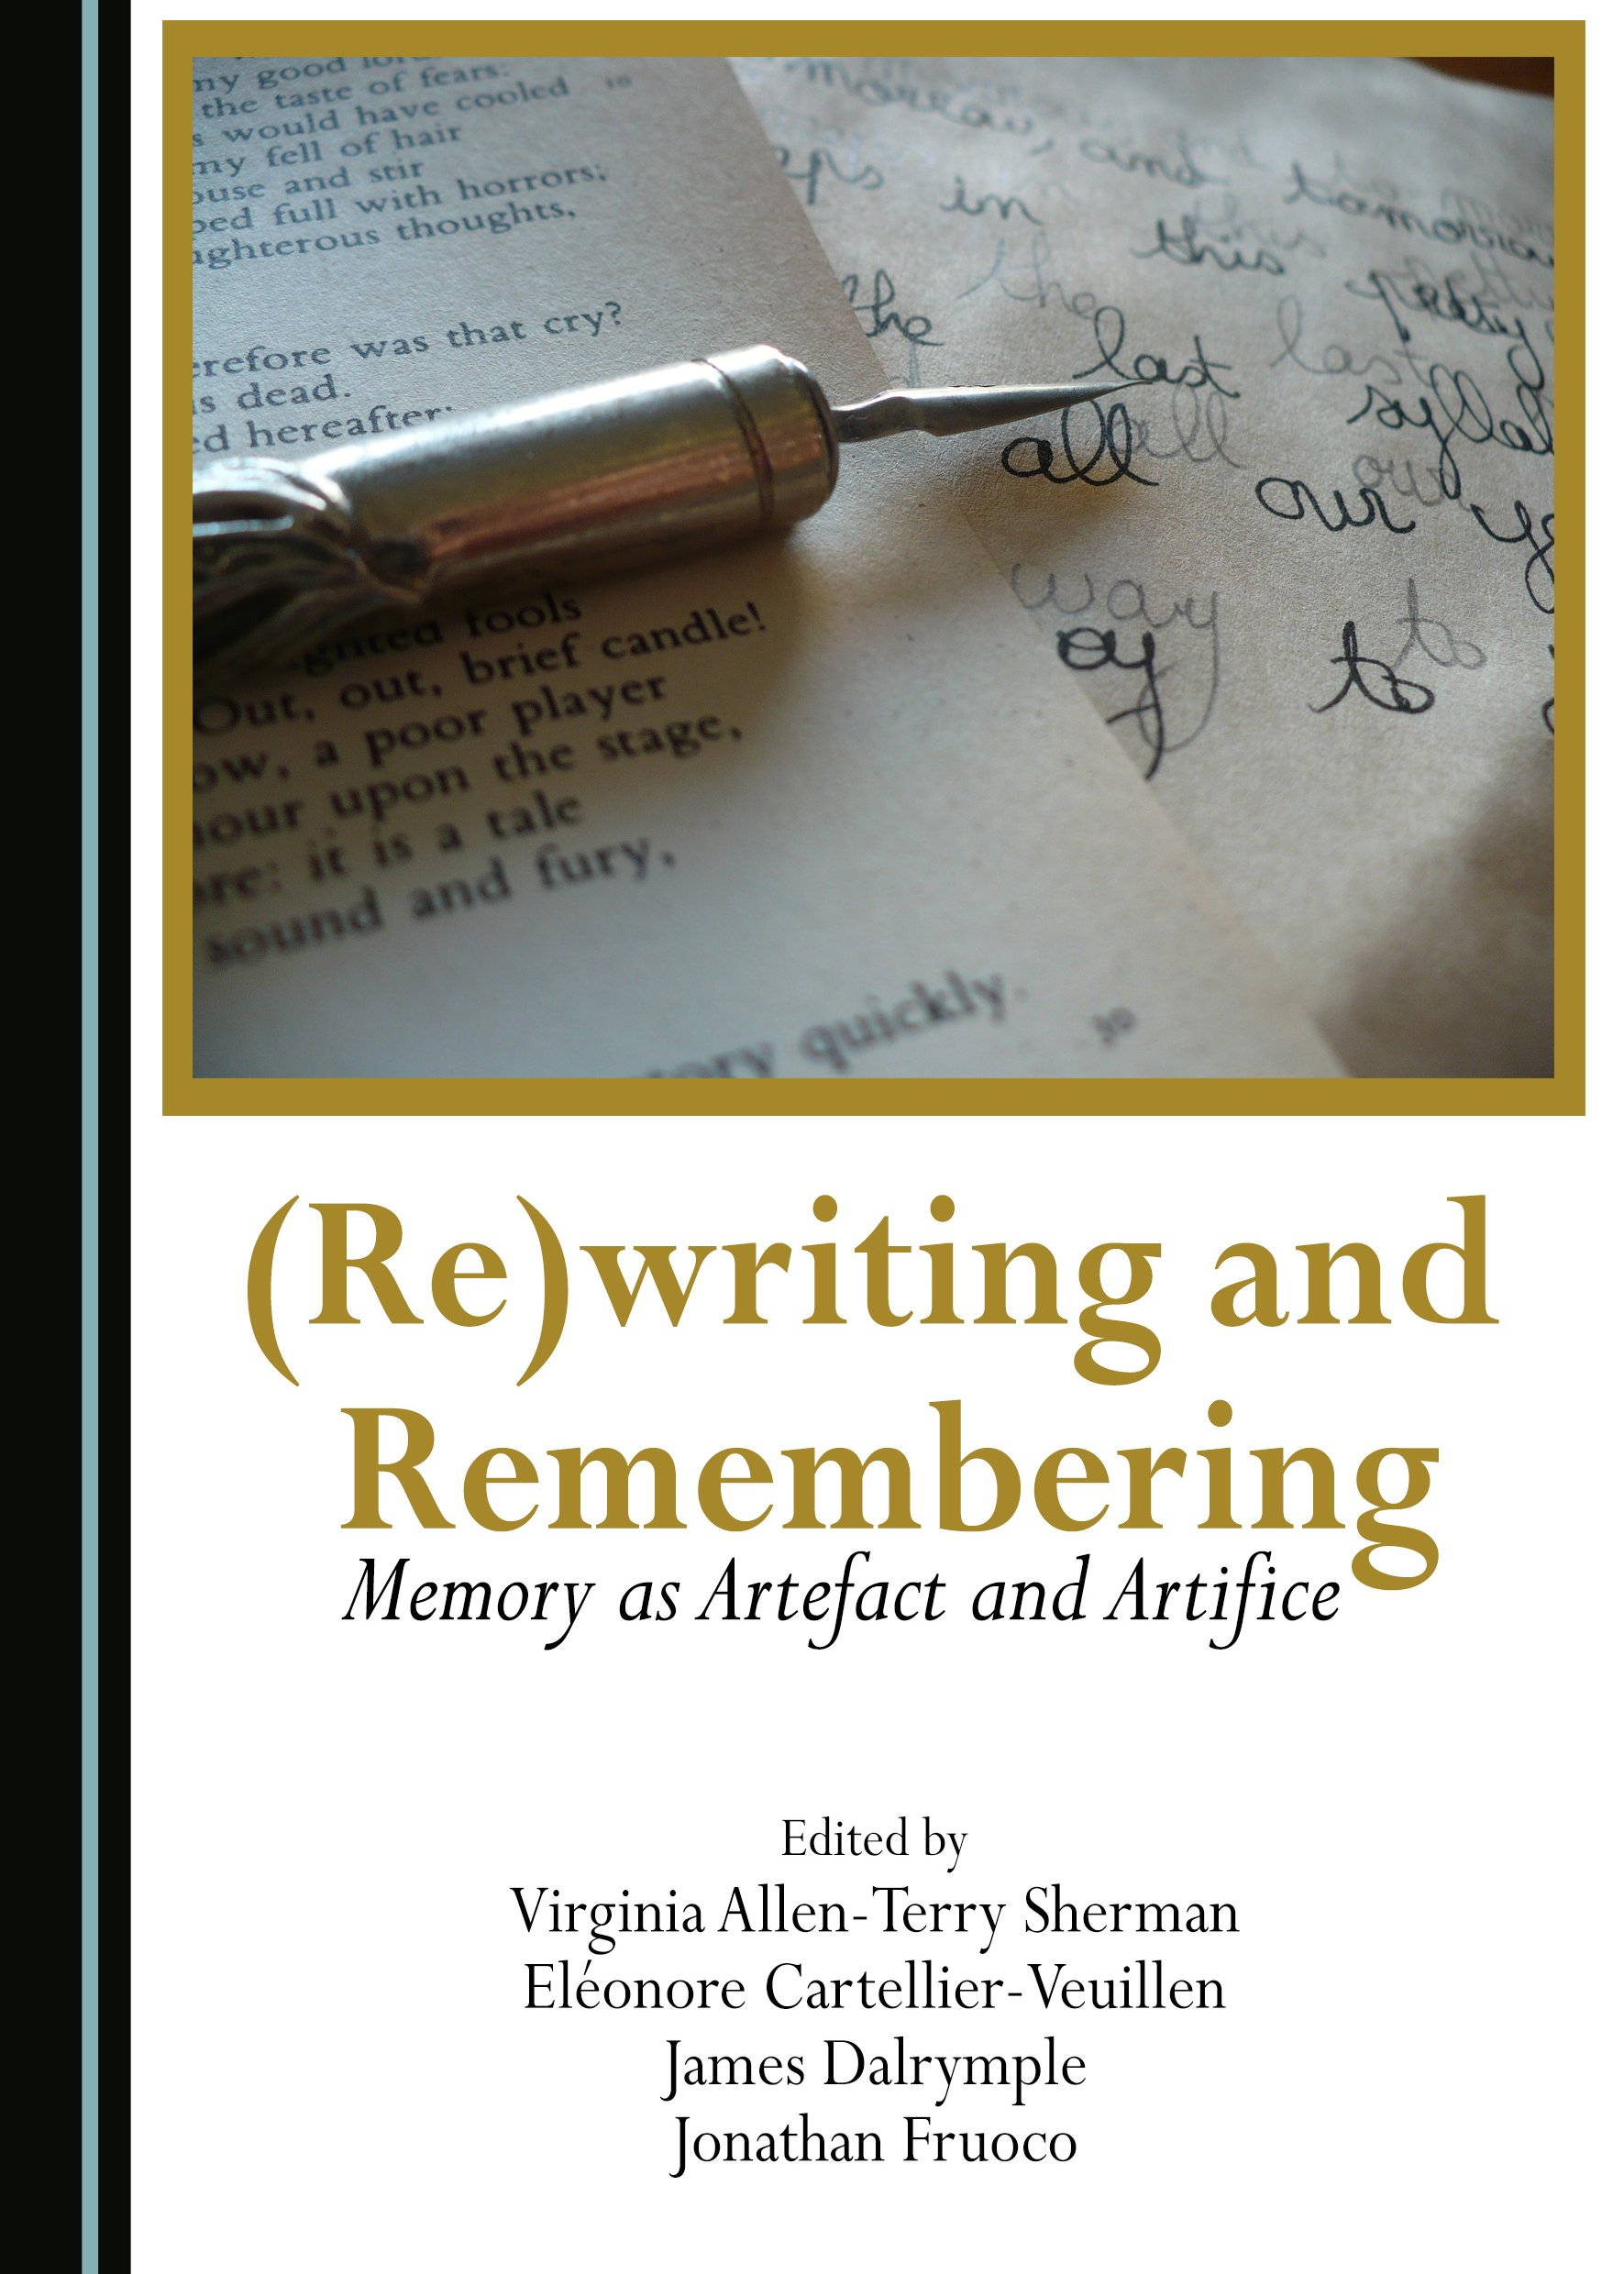 (Re)writing and Remembering: Memory as Artefact and Artifice